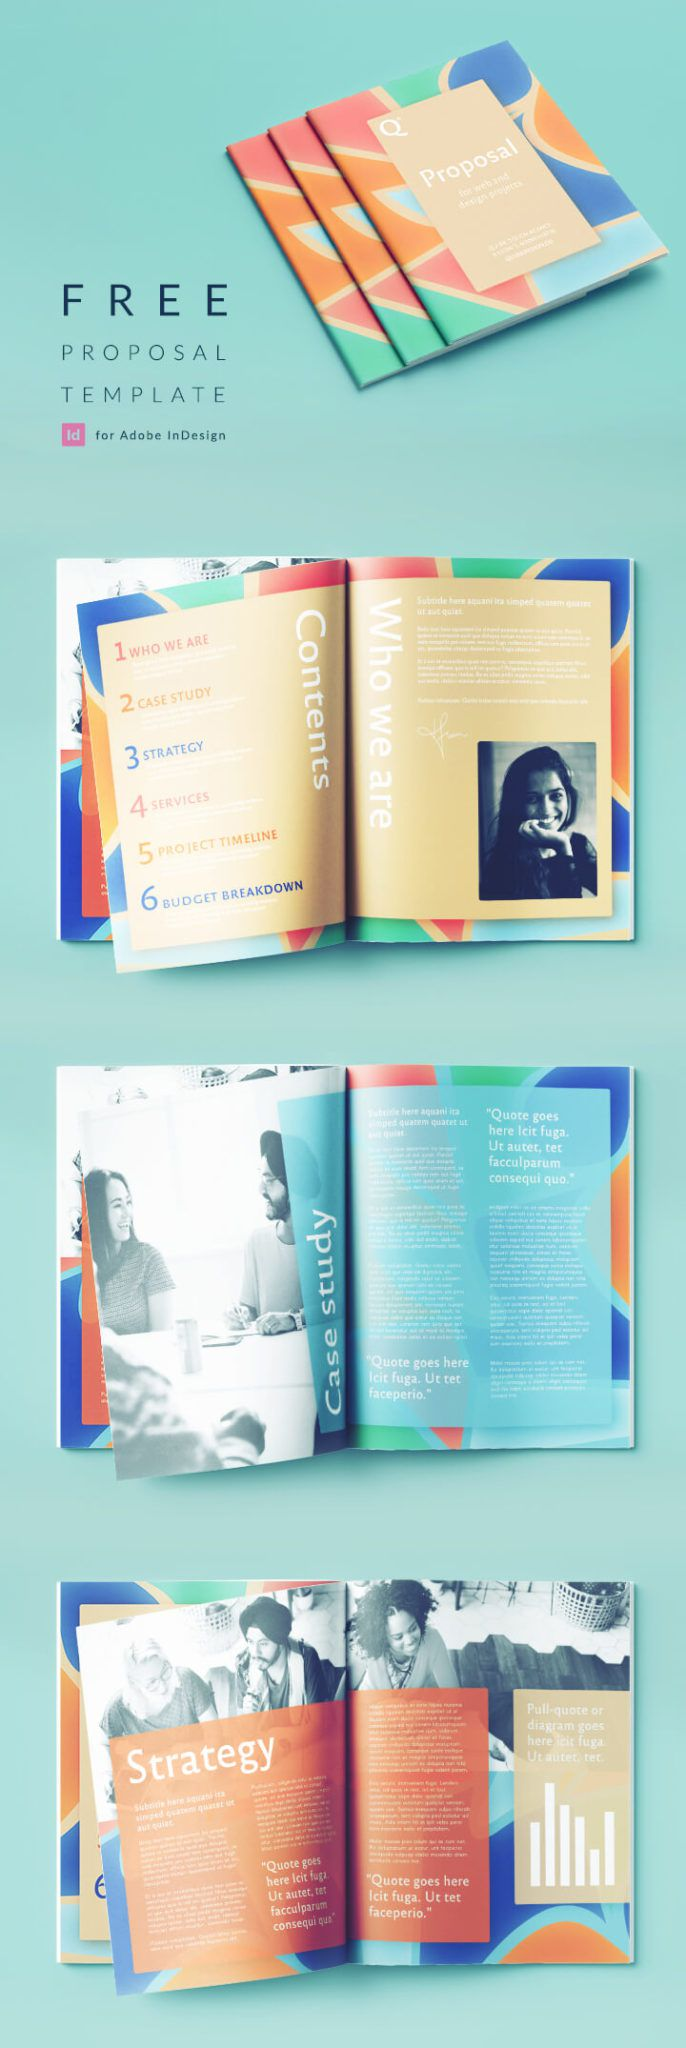 008 Exceptional Free Busines Proposal Template Indesign Concept Full